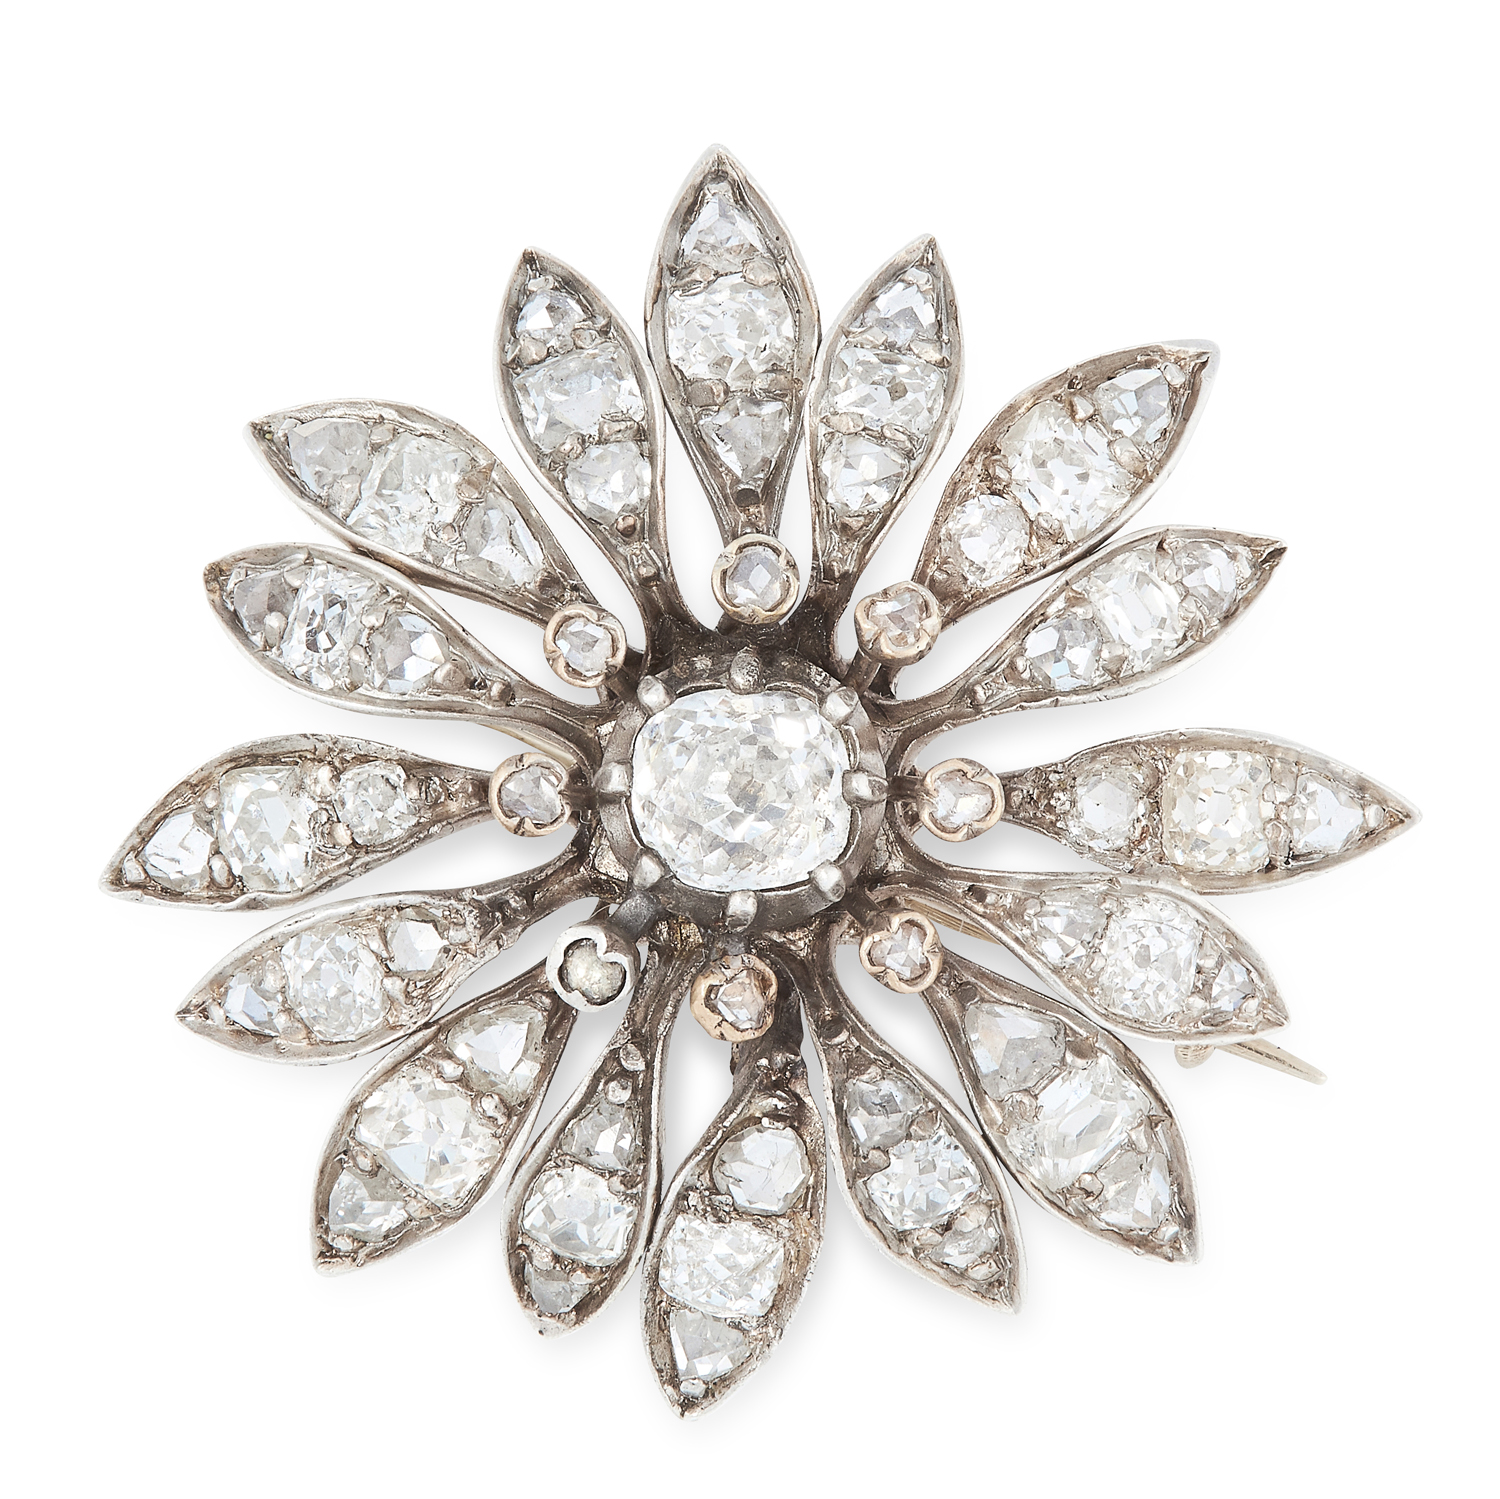 AN ANTIQUE DIAMOND FLOWER BROOCH, 19TH CENTURY in yellow gold and silver, designed as a flower,